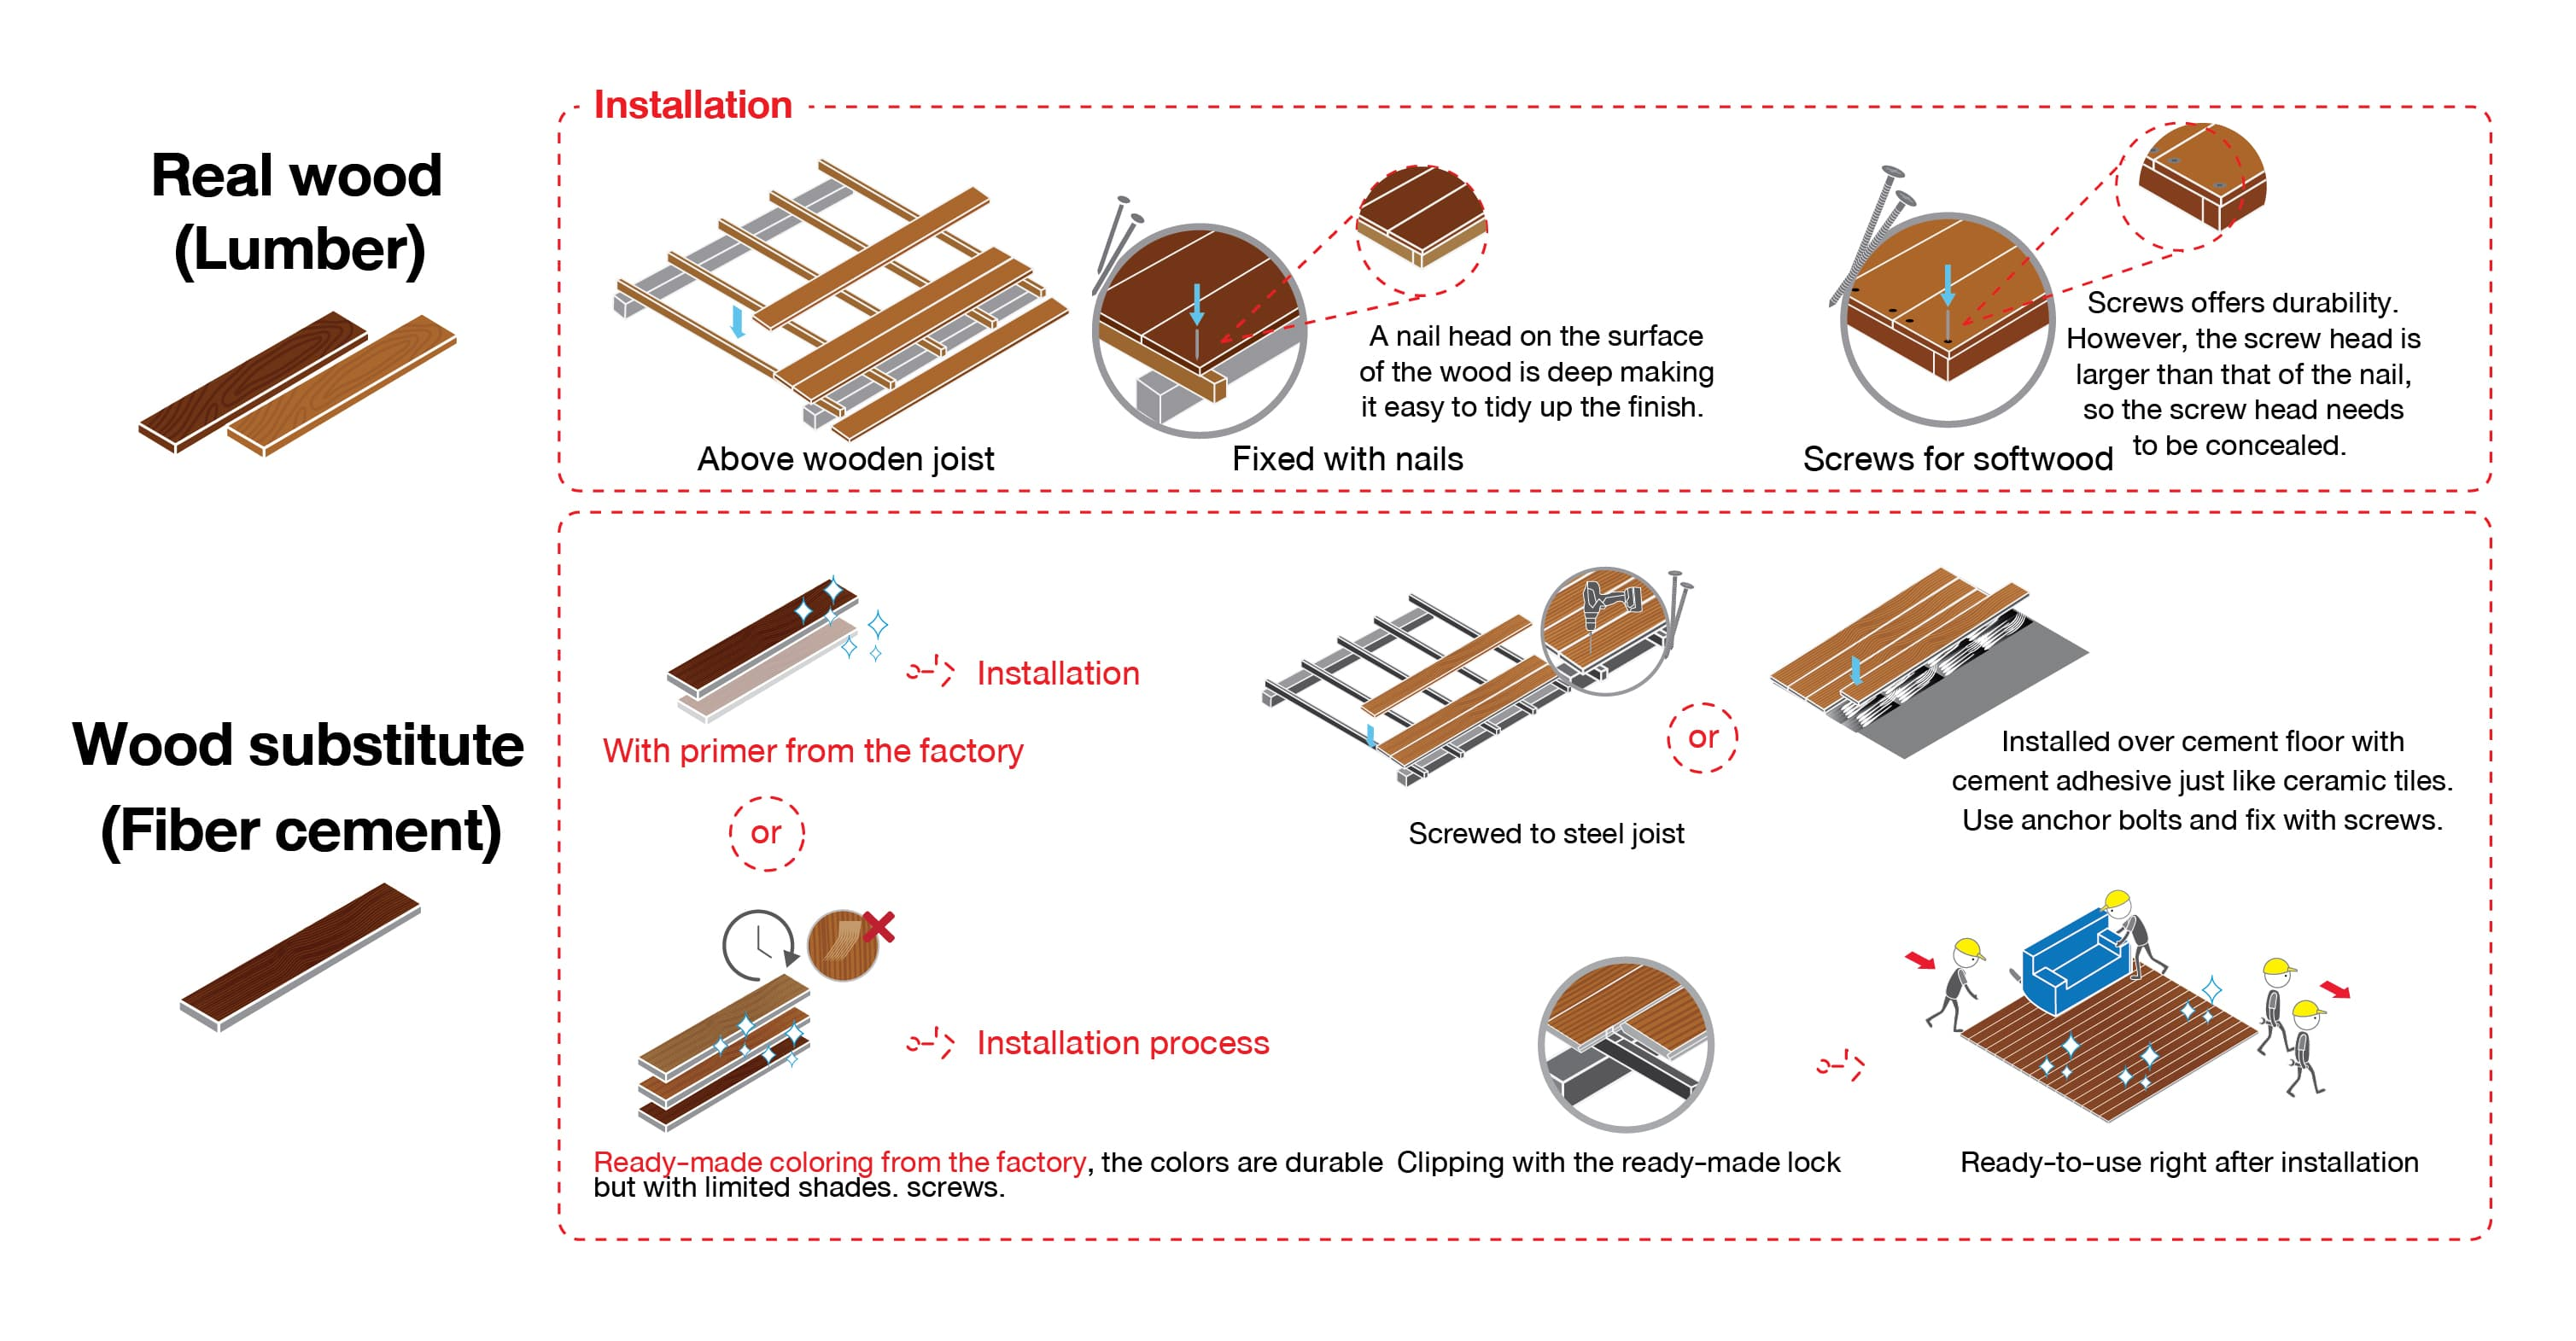 Difference between real wood and wood substitute decking installation